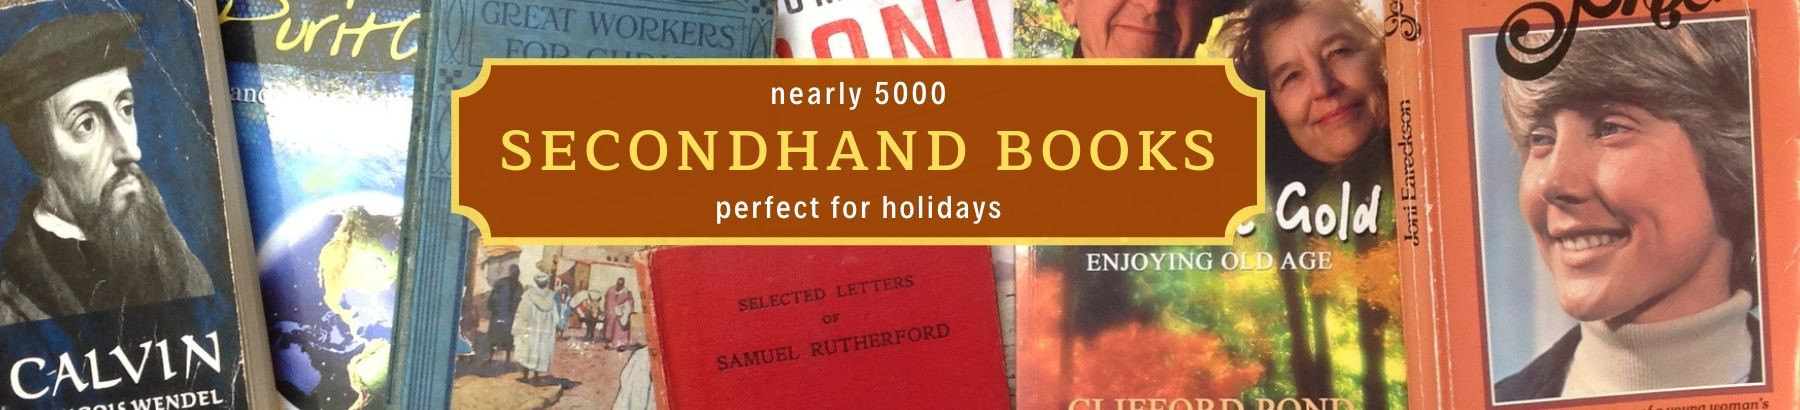 Secondhand books are perfect for holidays!